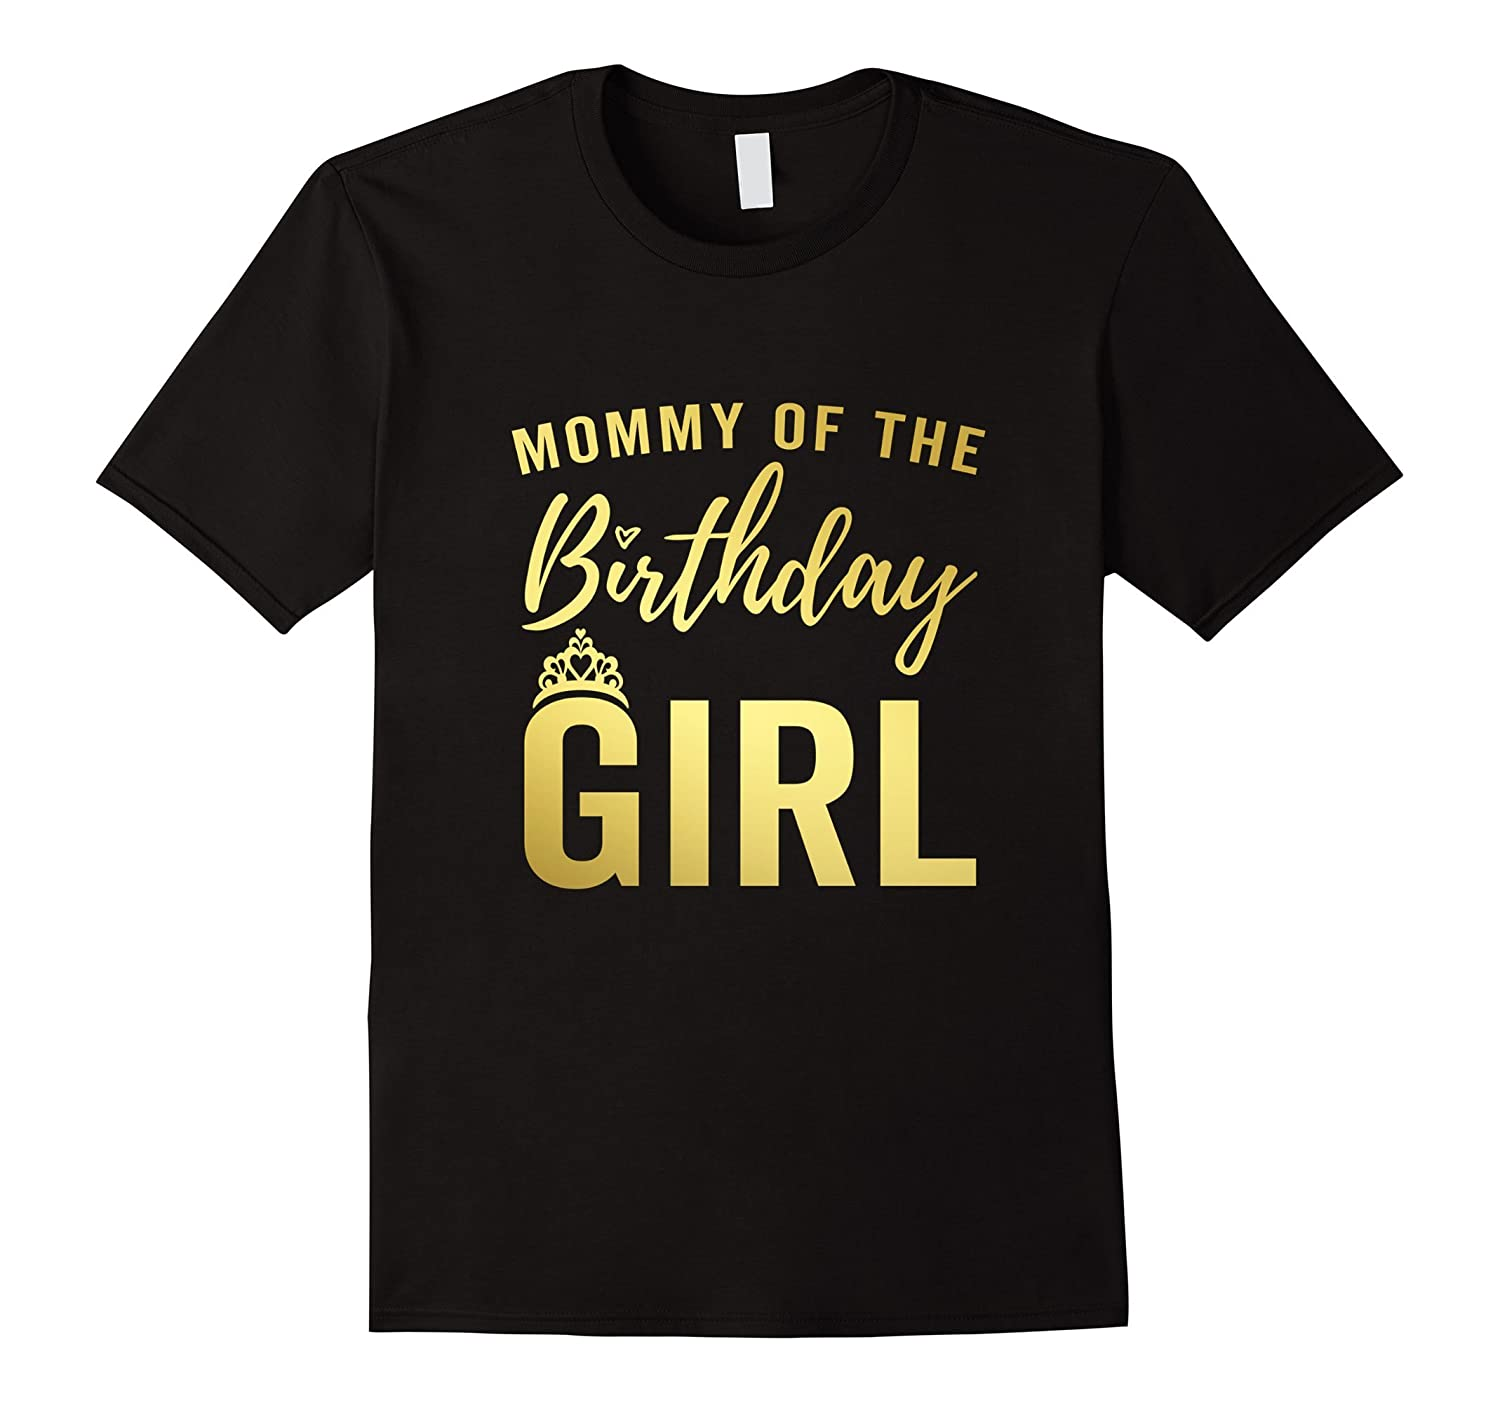 Mommy of Birthday Girl Shirt for Women Golden Effect-BN